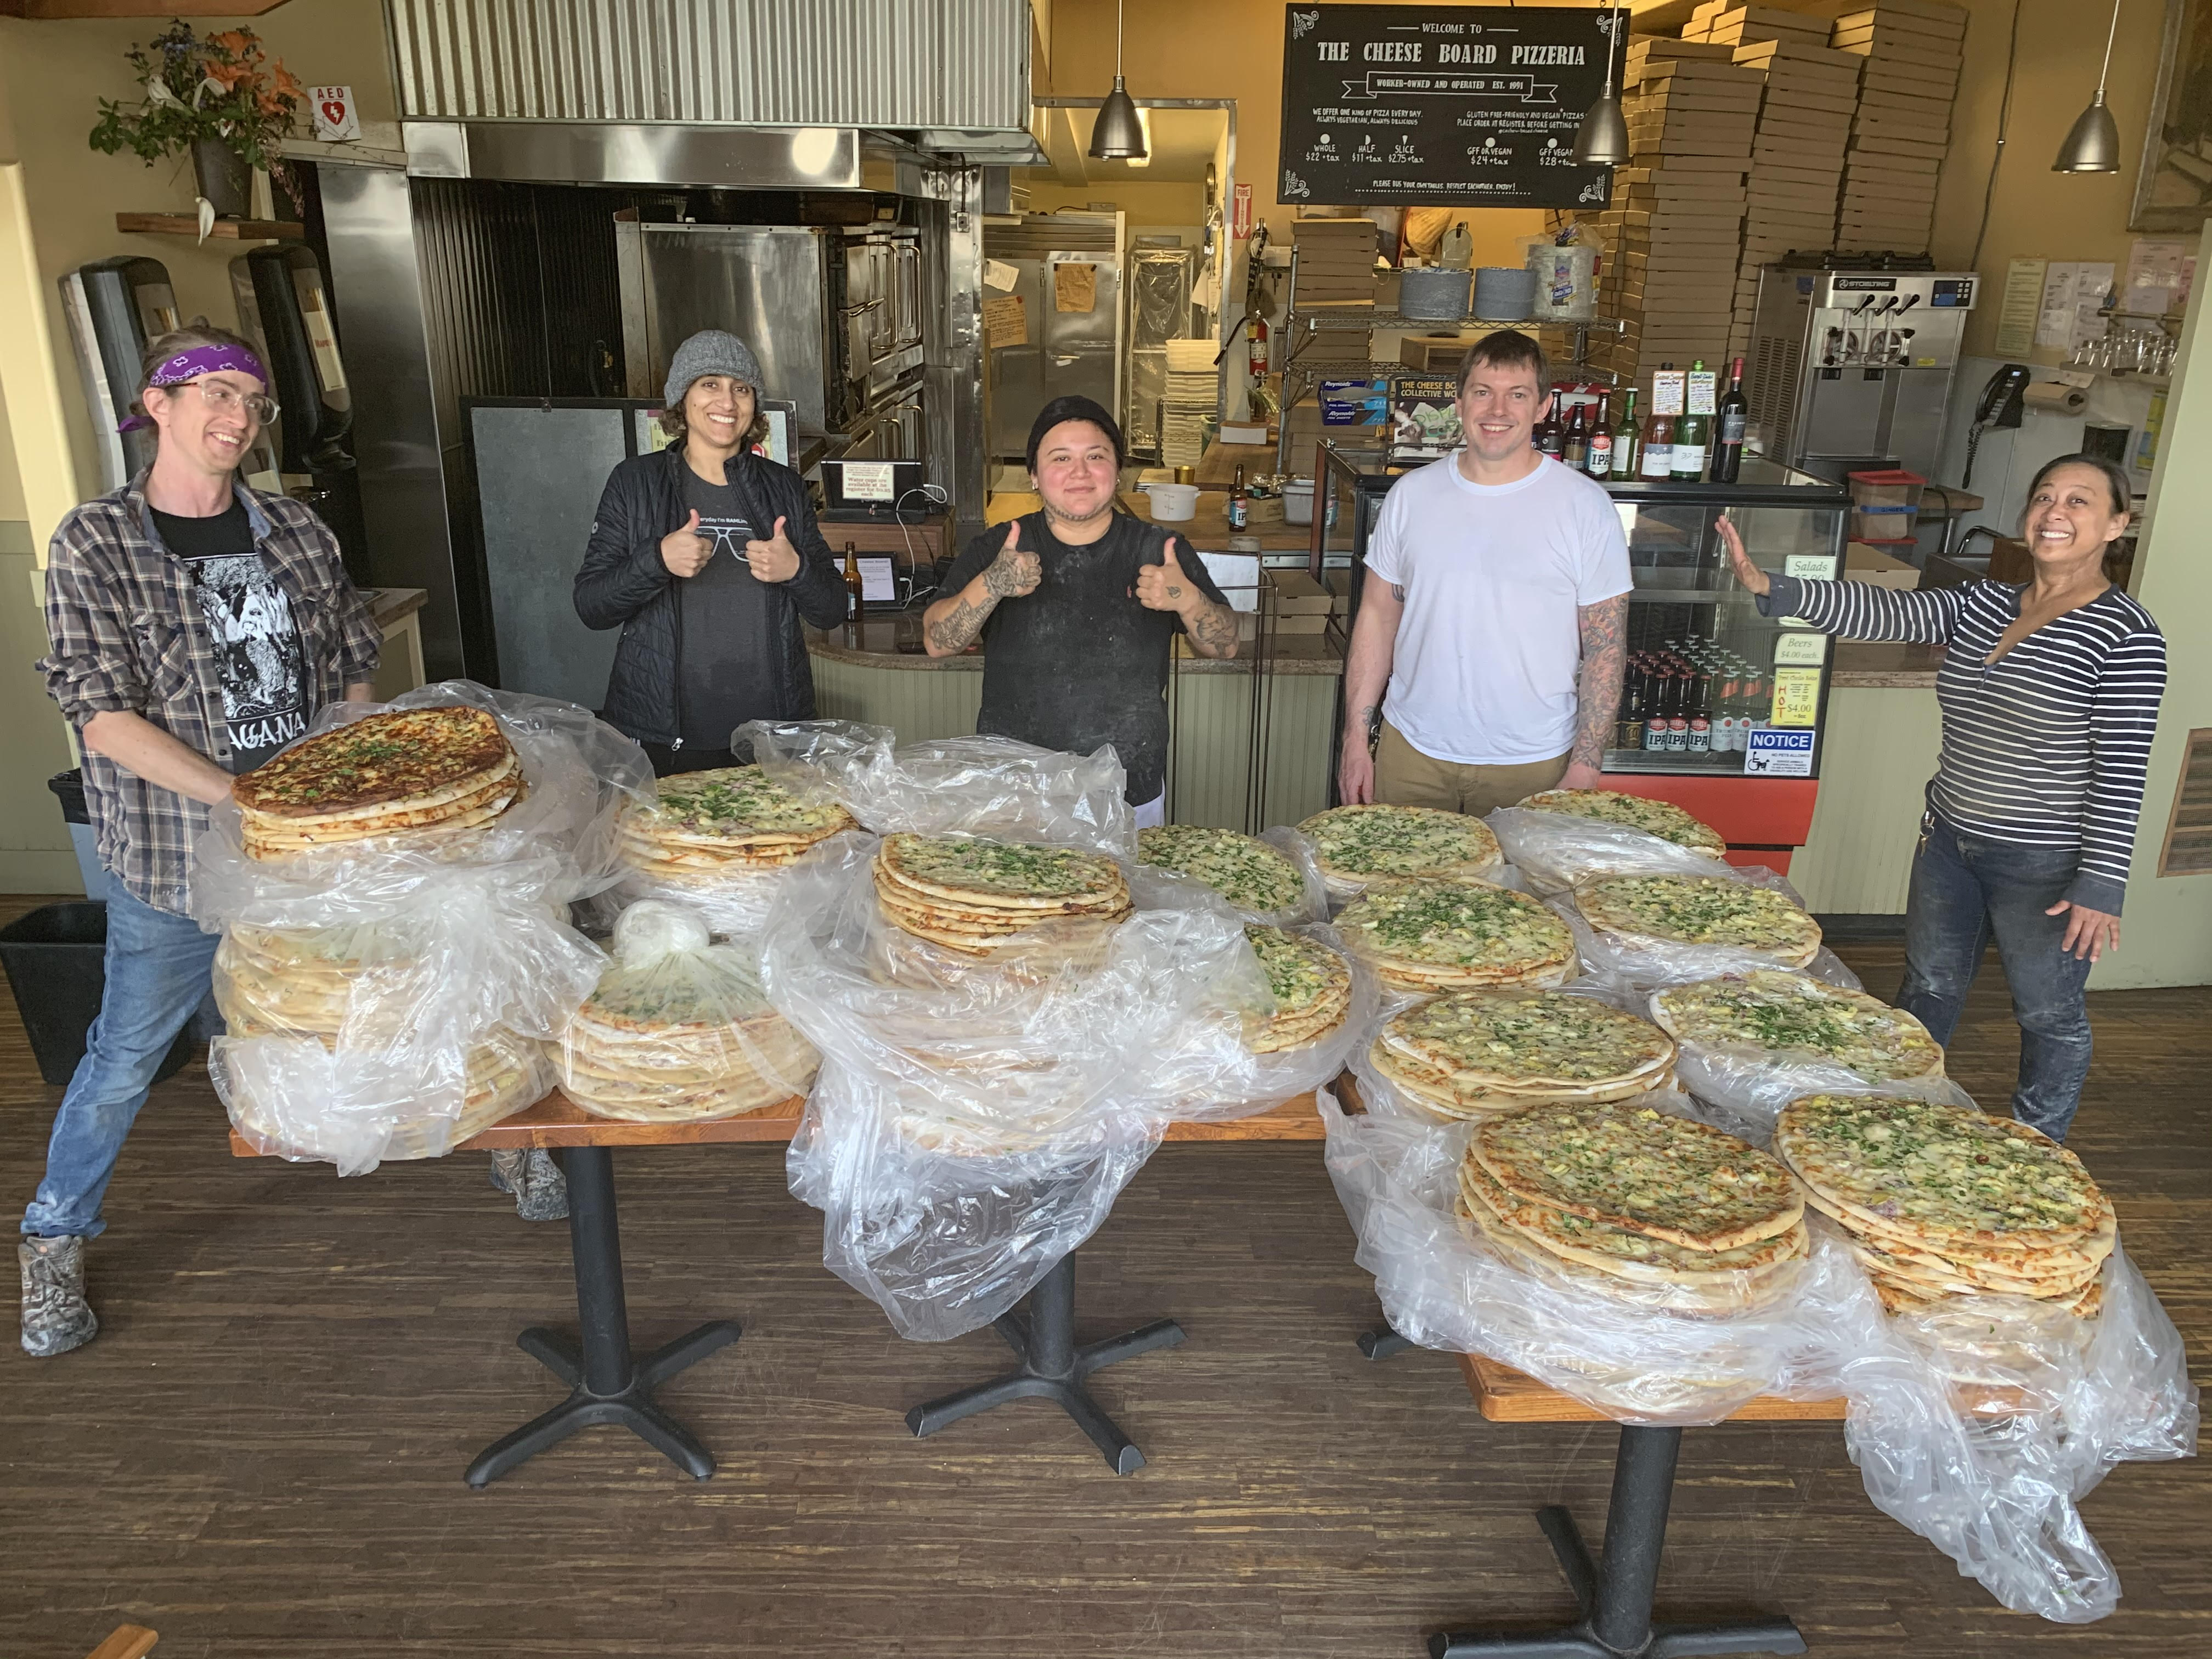 Members of the Cheese Board collective pose with pizzas they made to distribute to local shelters before closing down